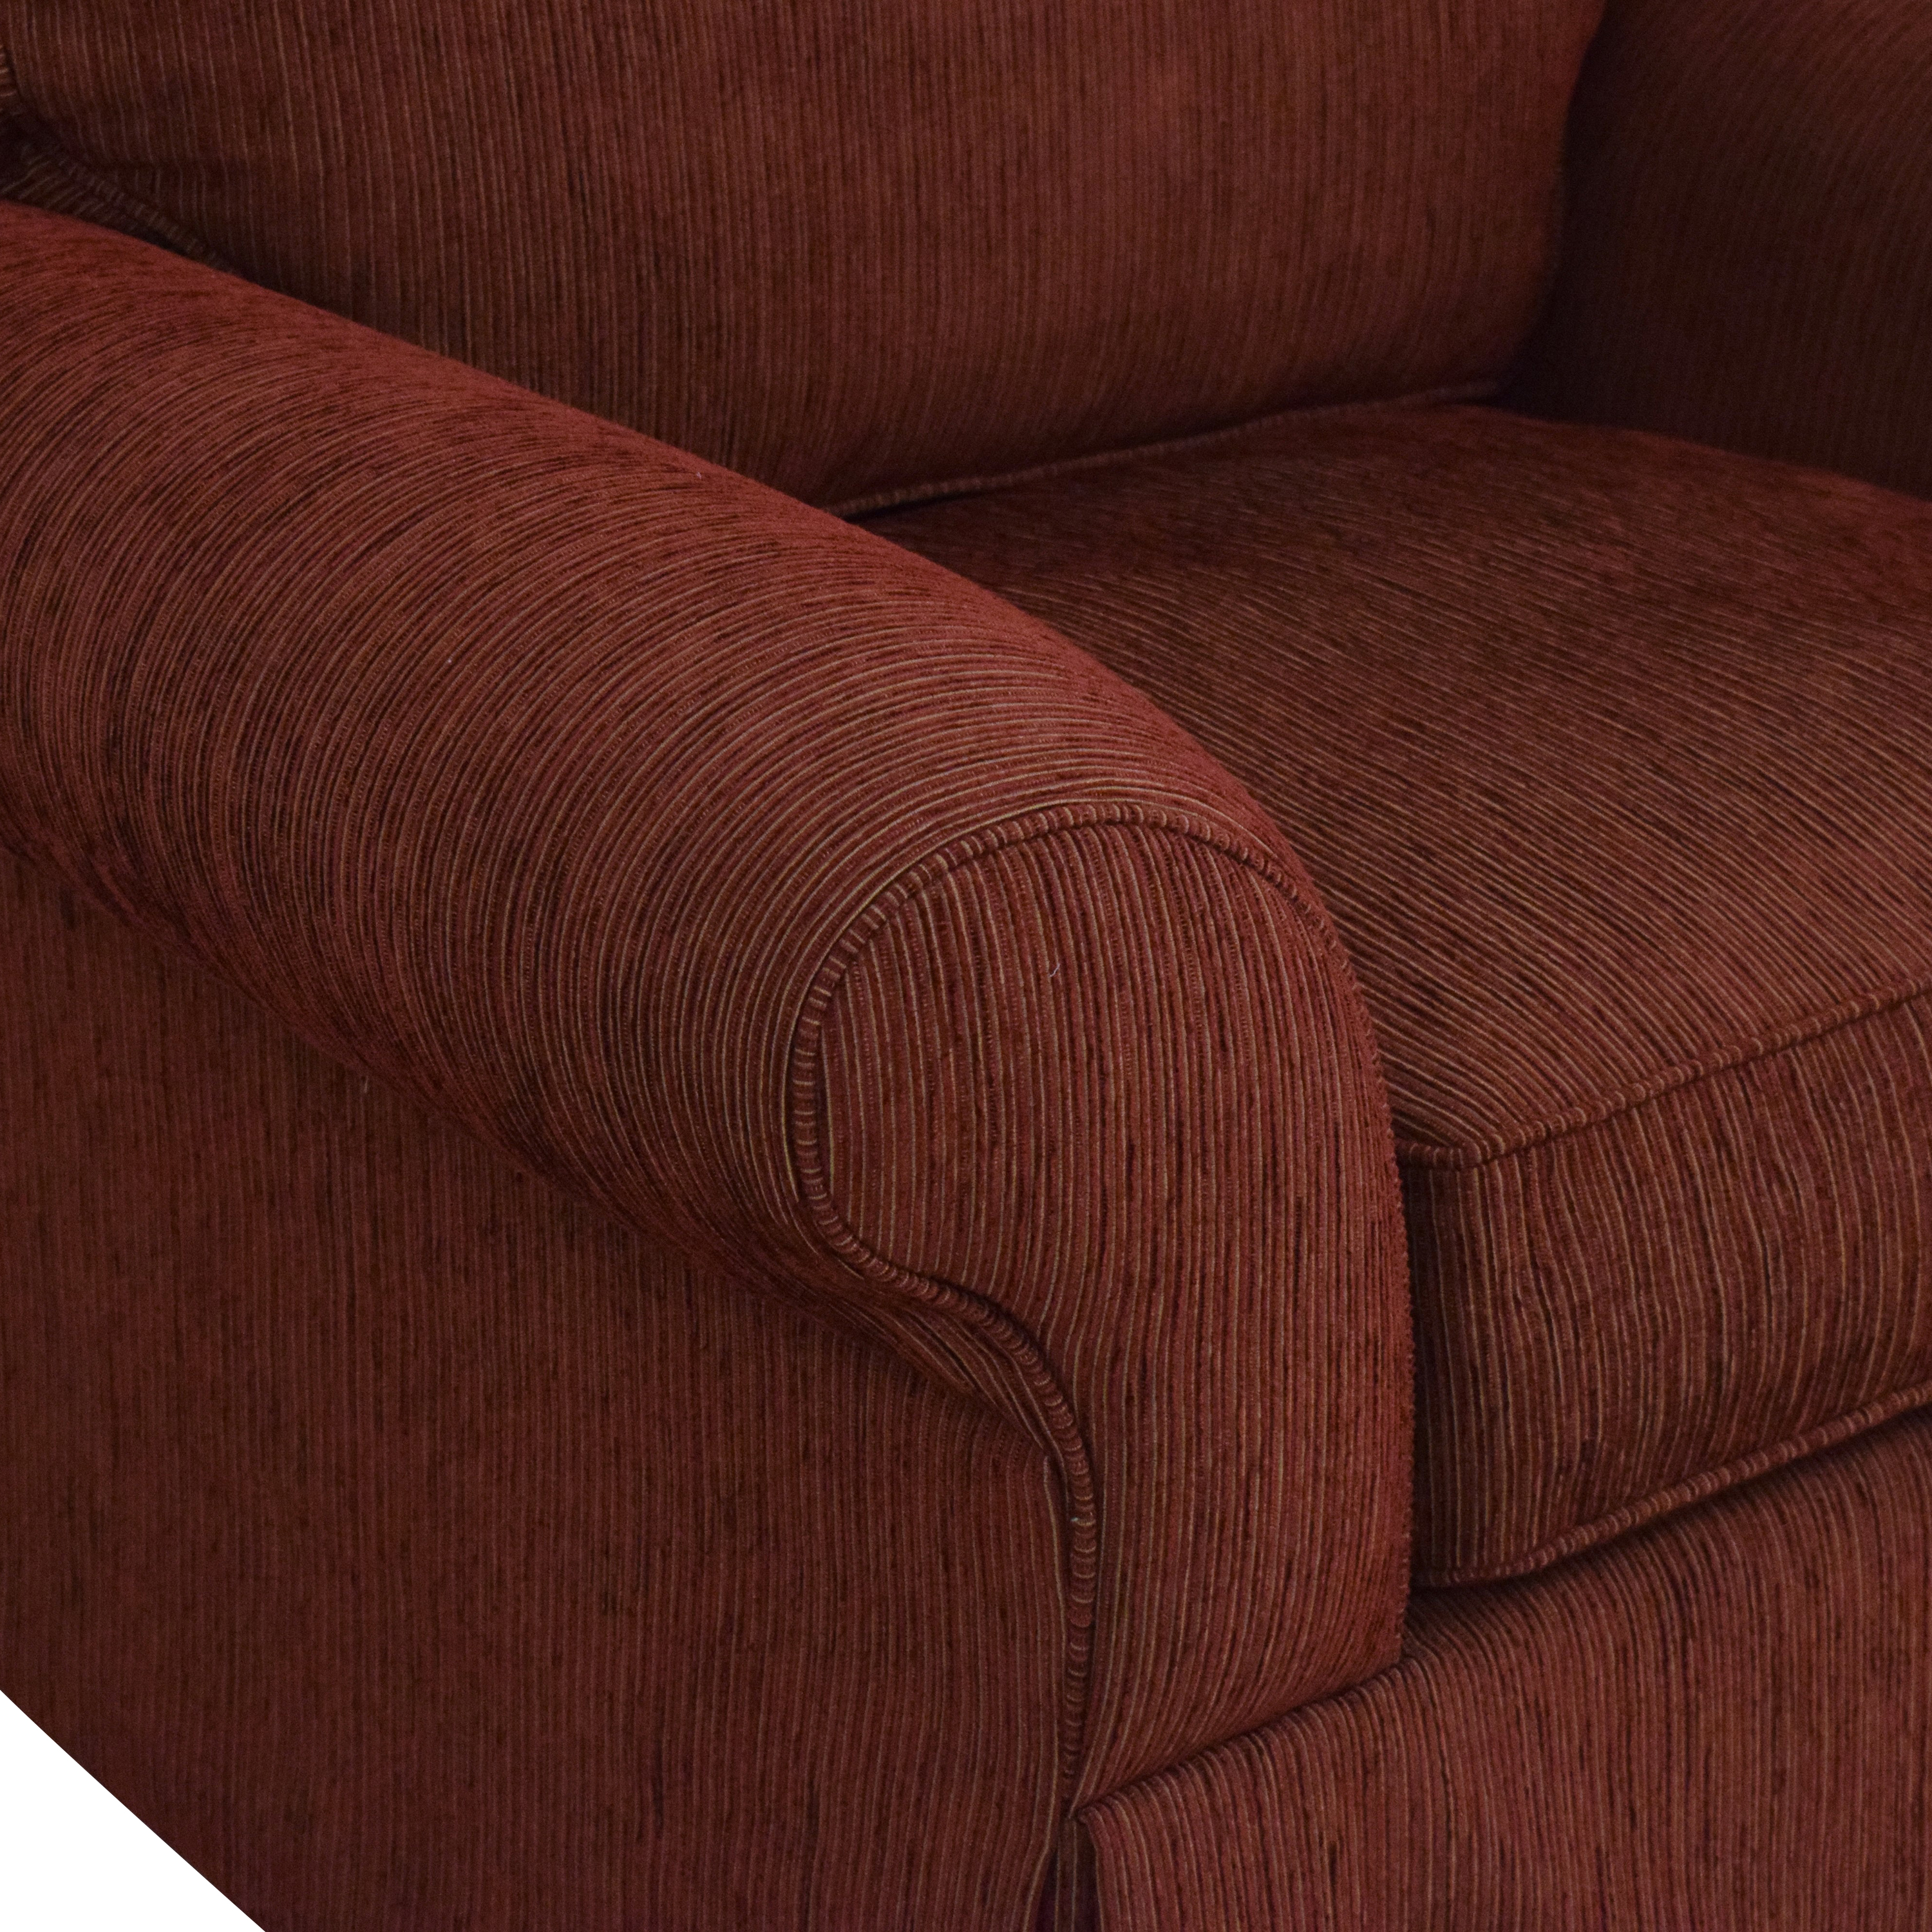 Crate & Barrel Crate & Barrel Skirted Roll Arm Accent Chair